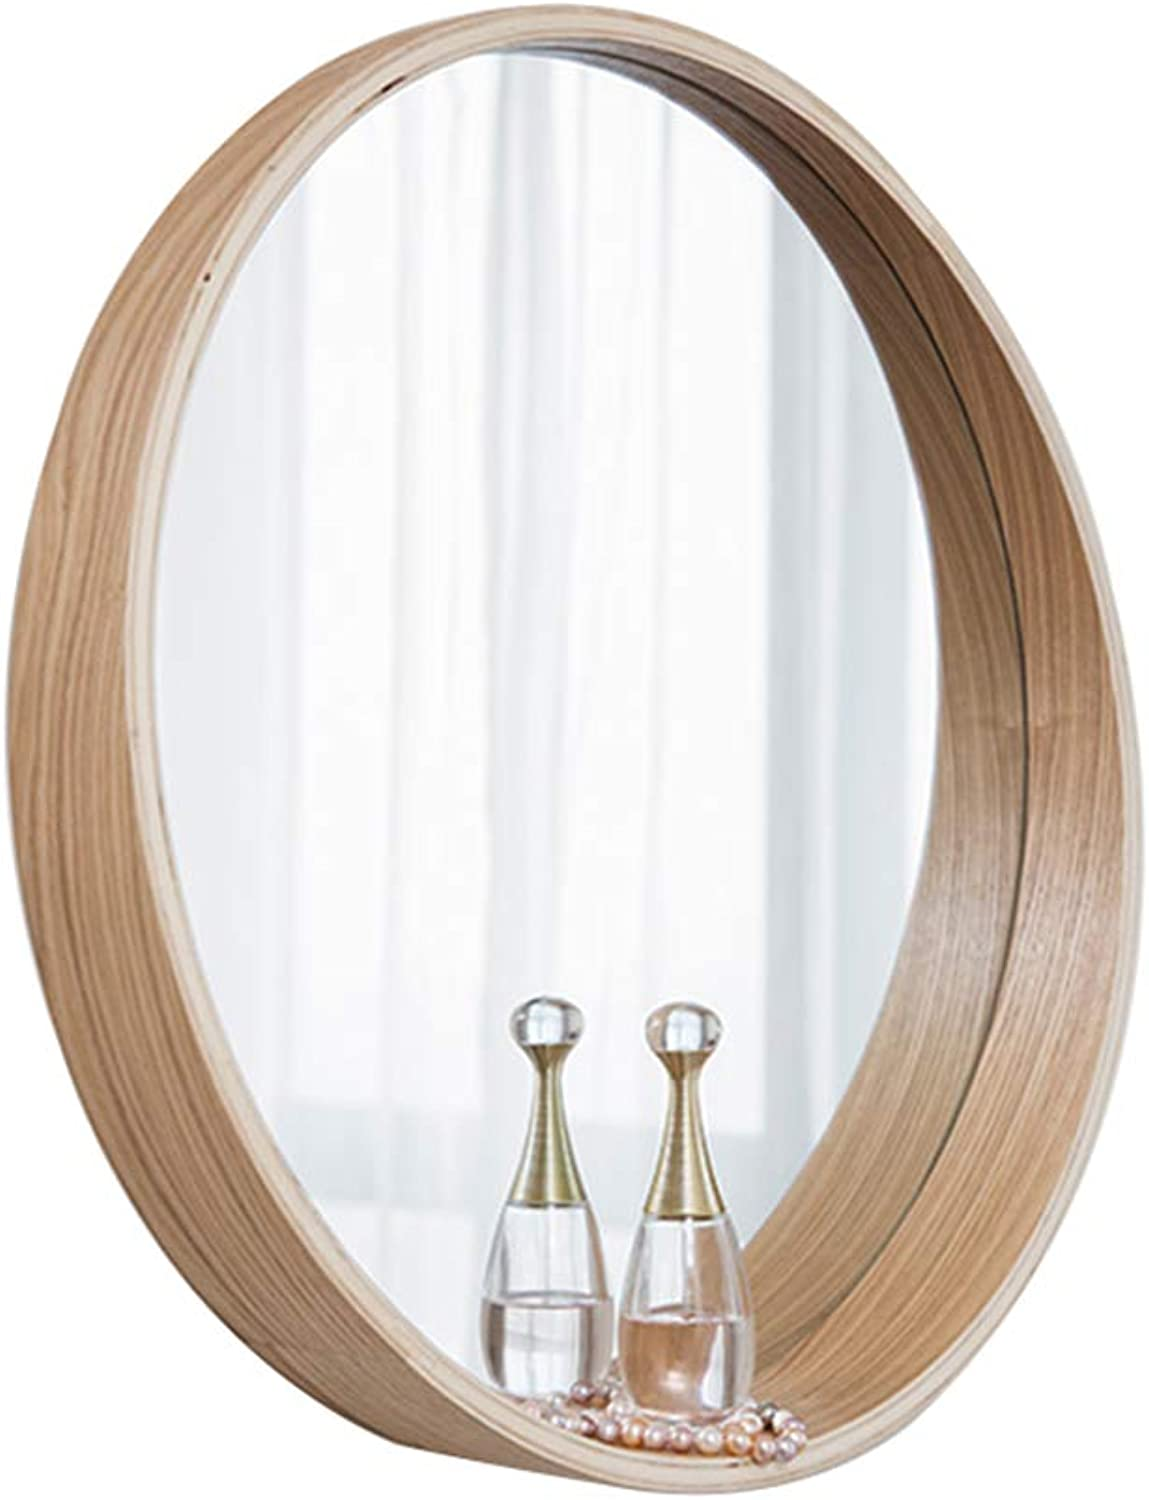 YONGMEI Bathroom Bedroom Solid Wood Frame Round Vanity Mirror Storage Wall Mirror Simple Mirror (color   Wood color, Size   50  80CM)